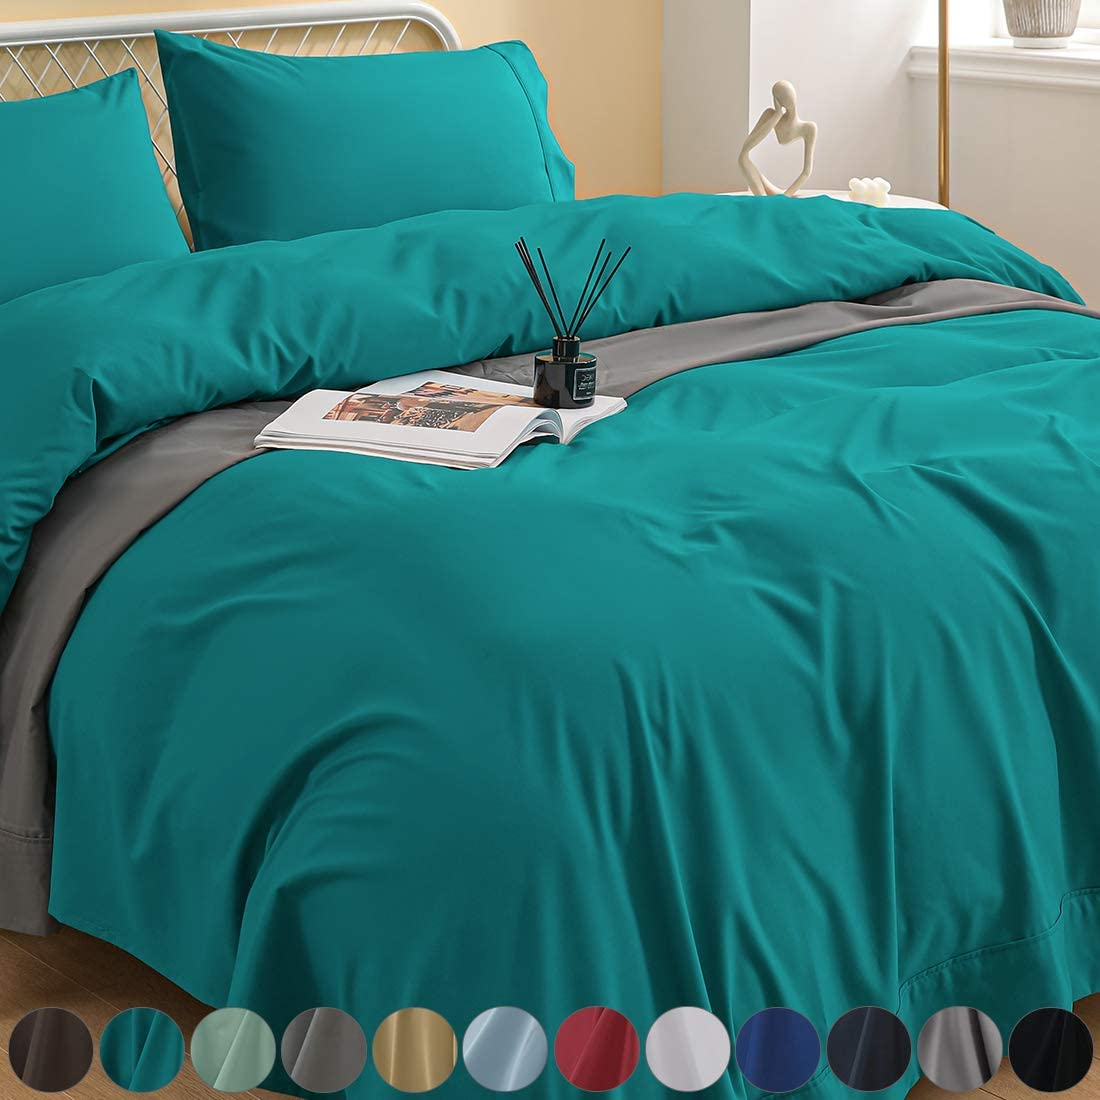 Newspin Bed Sheets Set, 1800 Series Soft Sheets Thicken Durable Double Brushed Microfiber Wrinkle Resistant Bedding Sheet fit 14-18 inch Deep Pockets Mattress(4 Piece Queen Sheet Set,Teal)